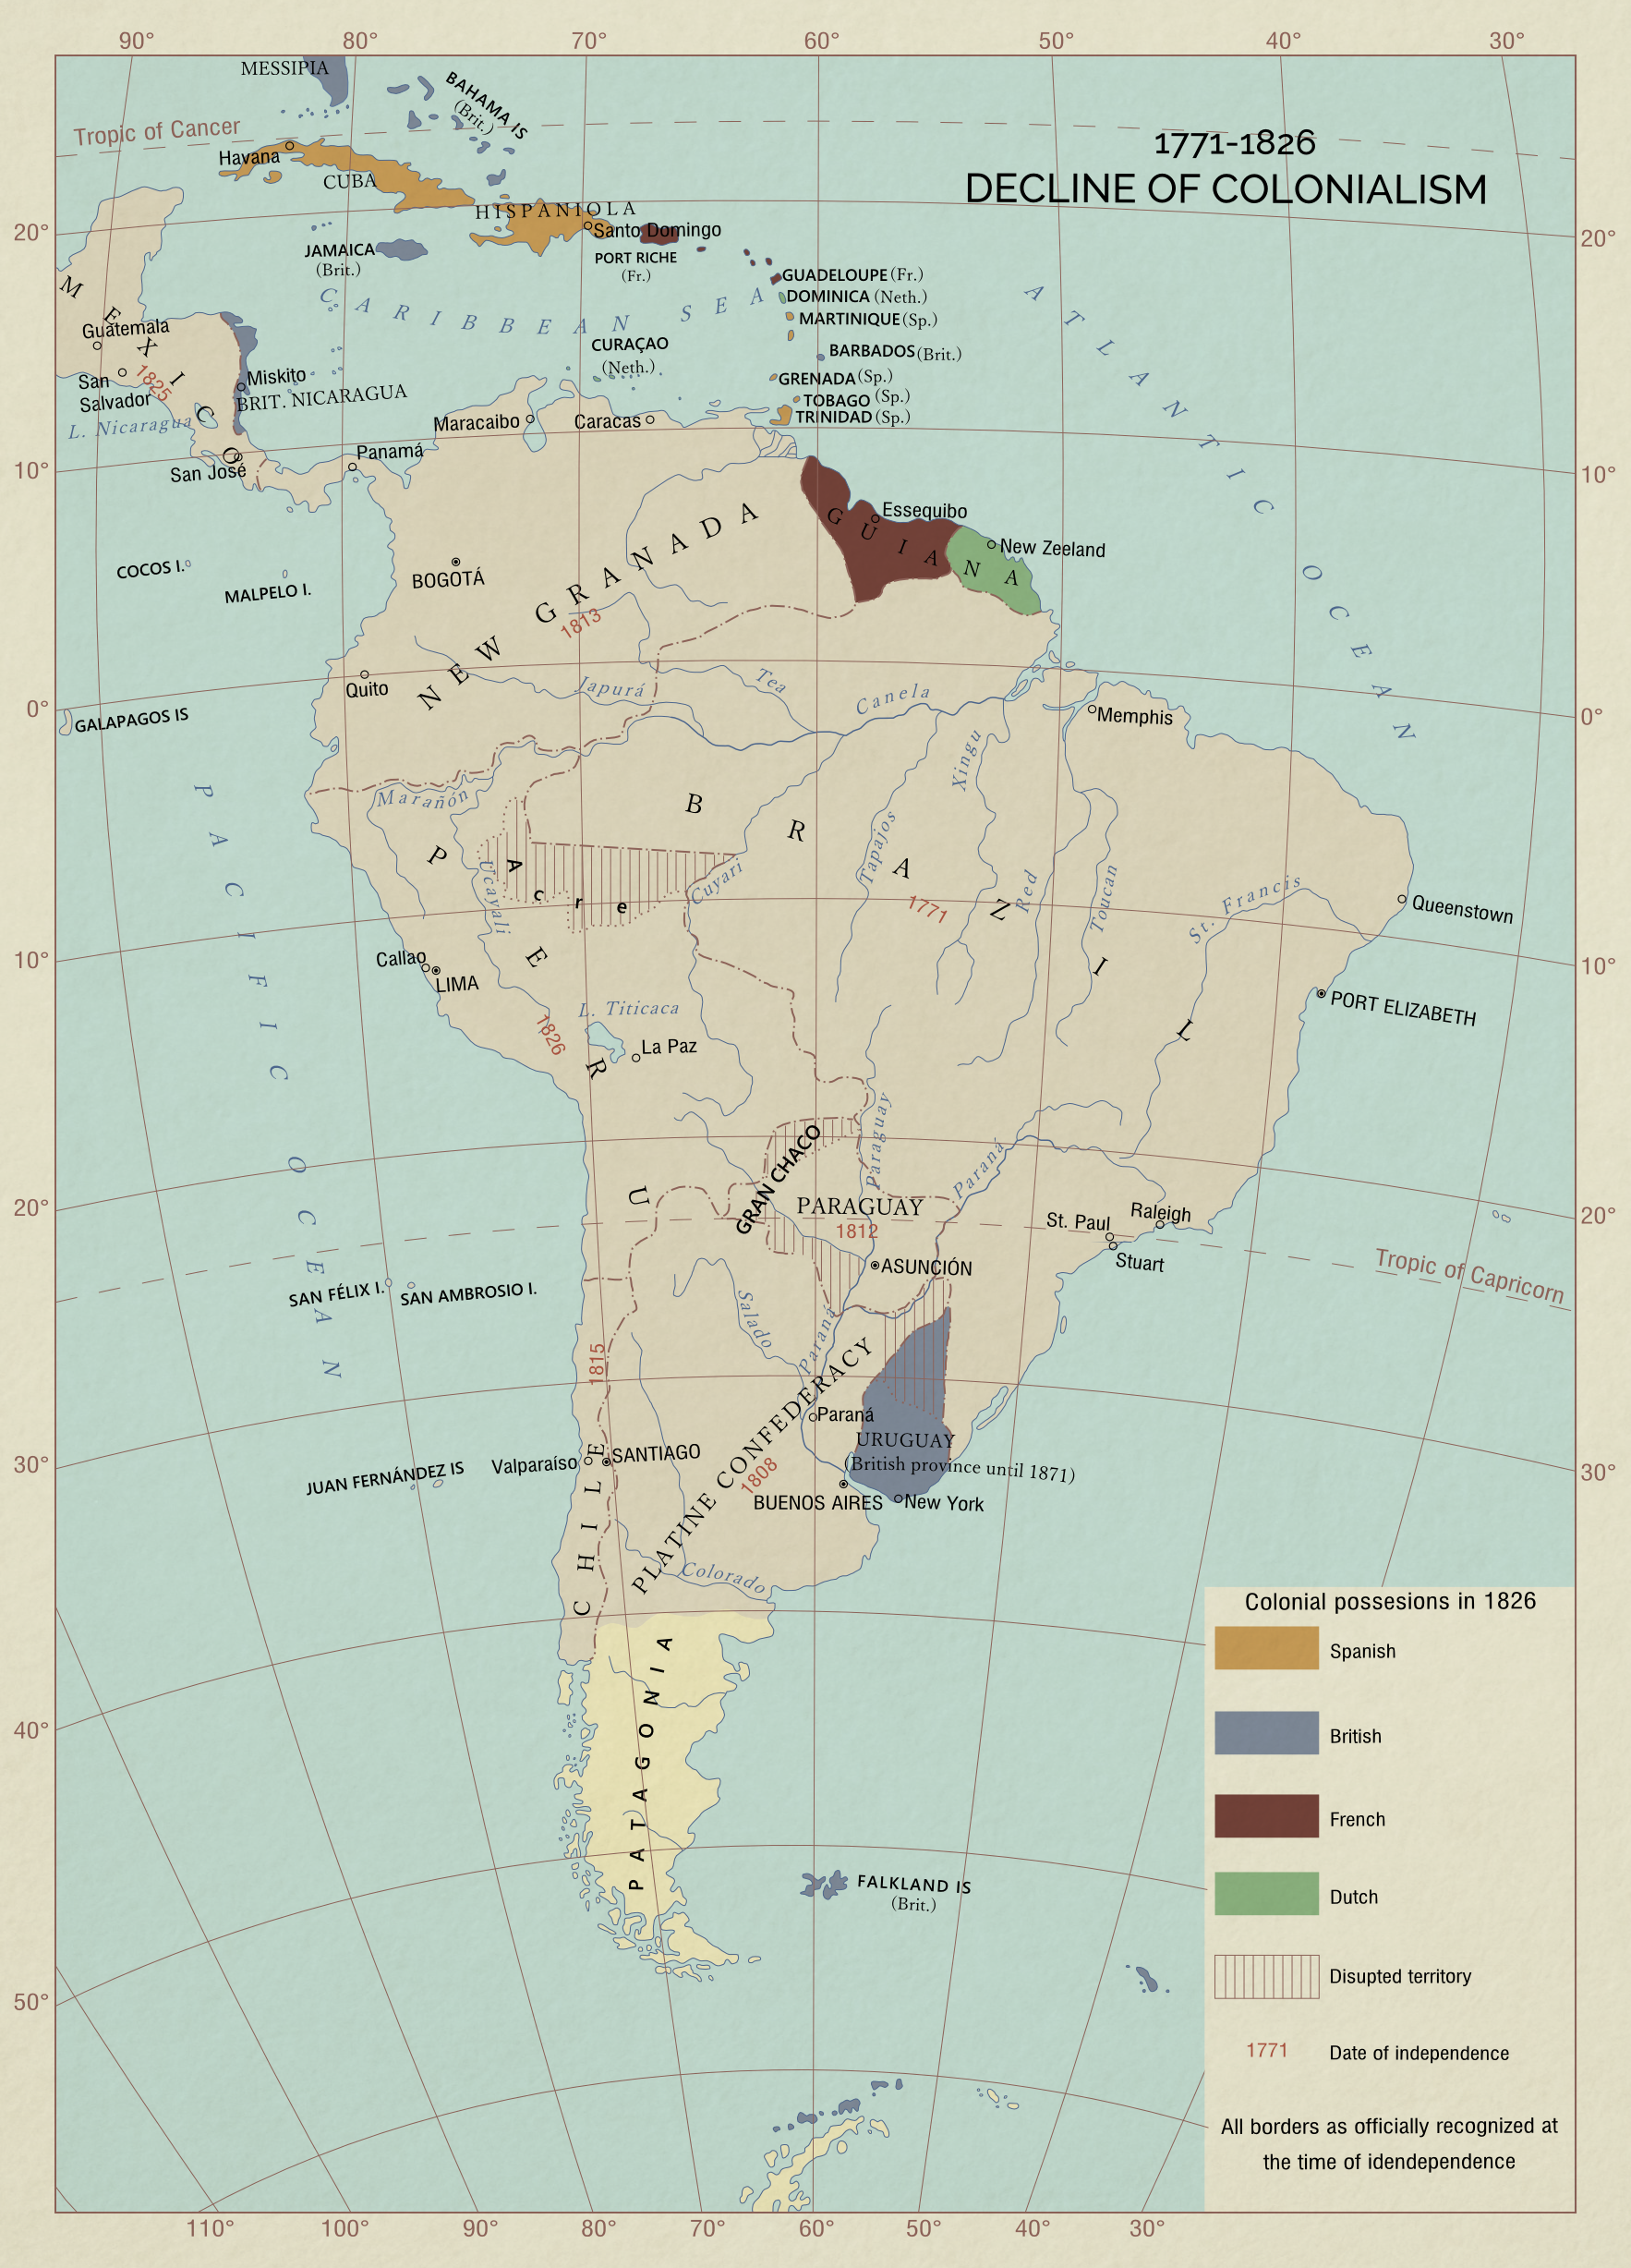 WHWEJ Decline Of Colonialism In South America By ToixStory On - South america map gran chaco